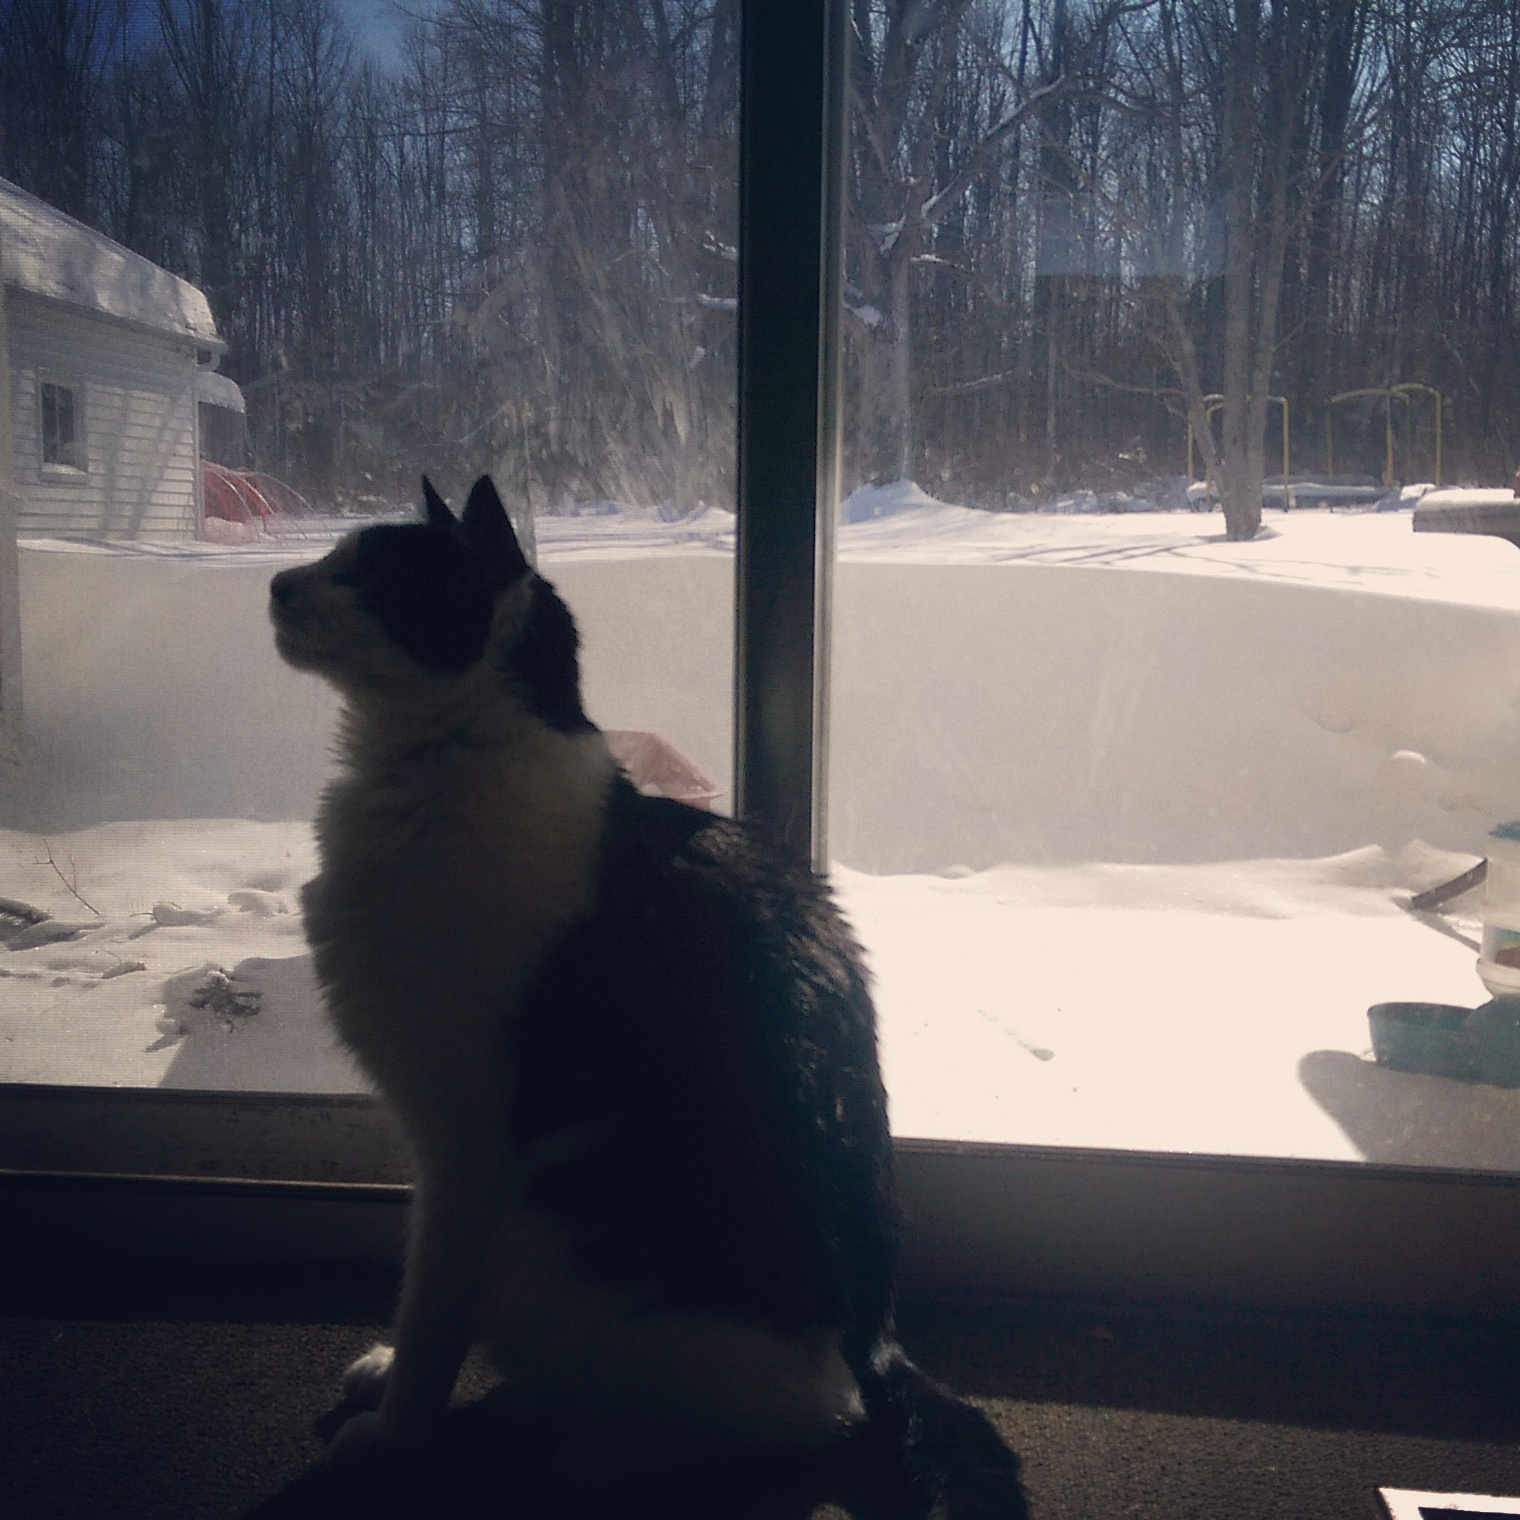 You can meow at the door all you want. When I open it, the wall of snow will still be there.